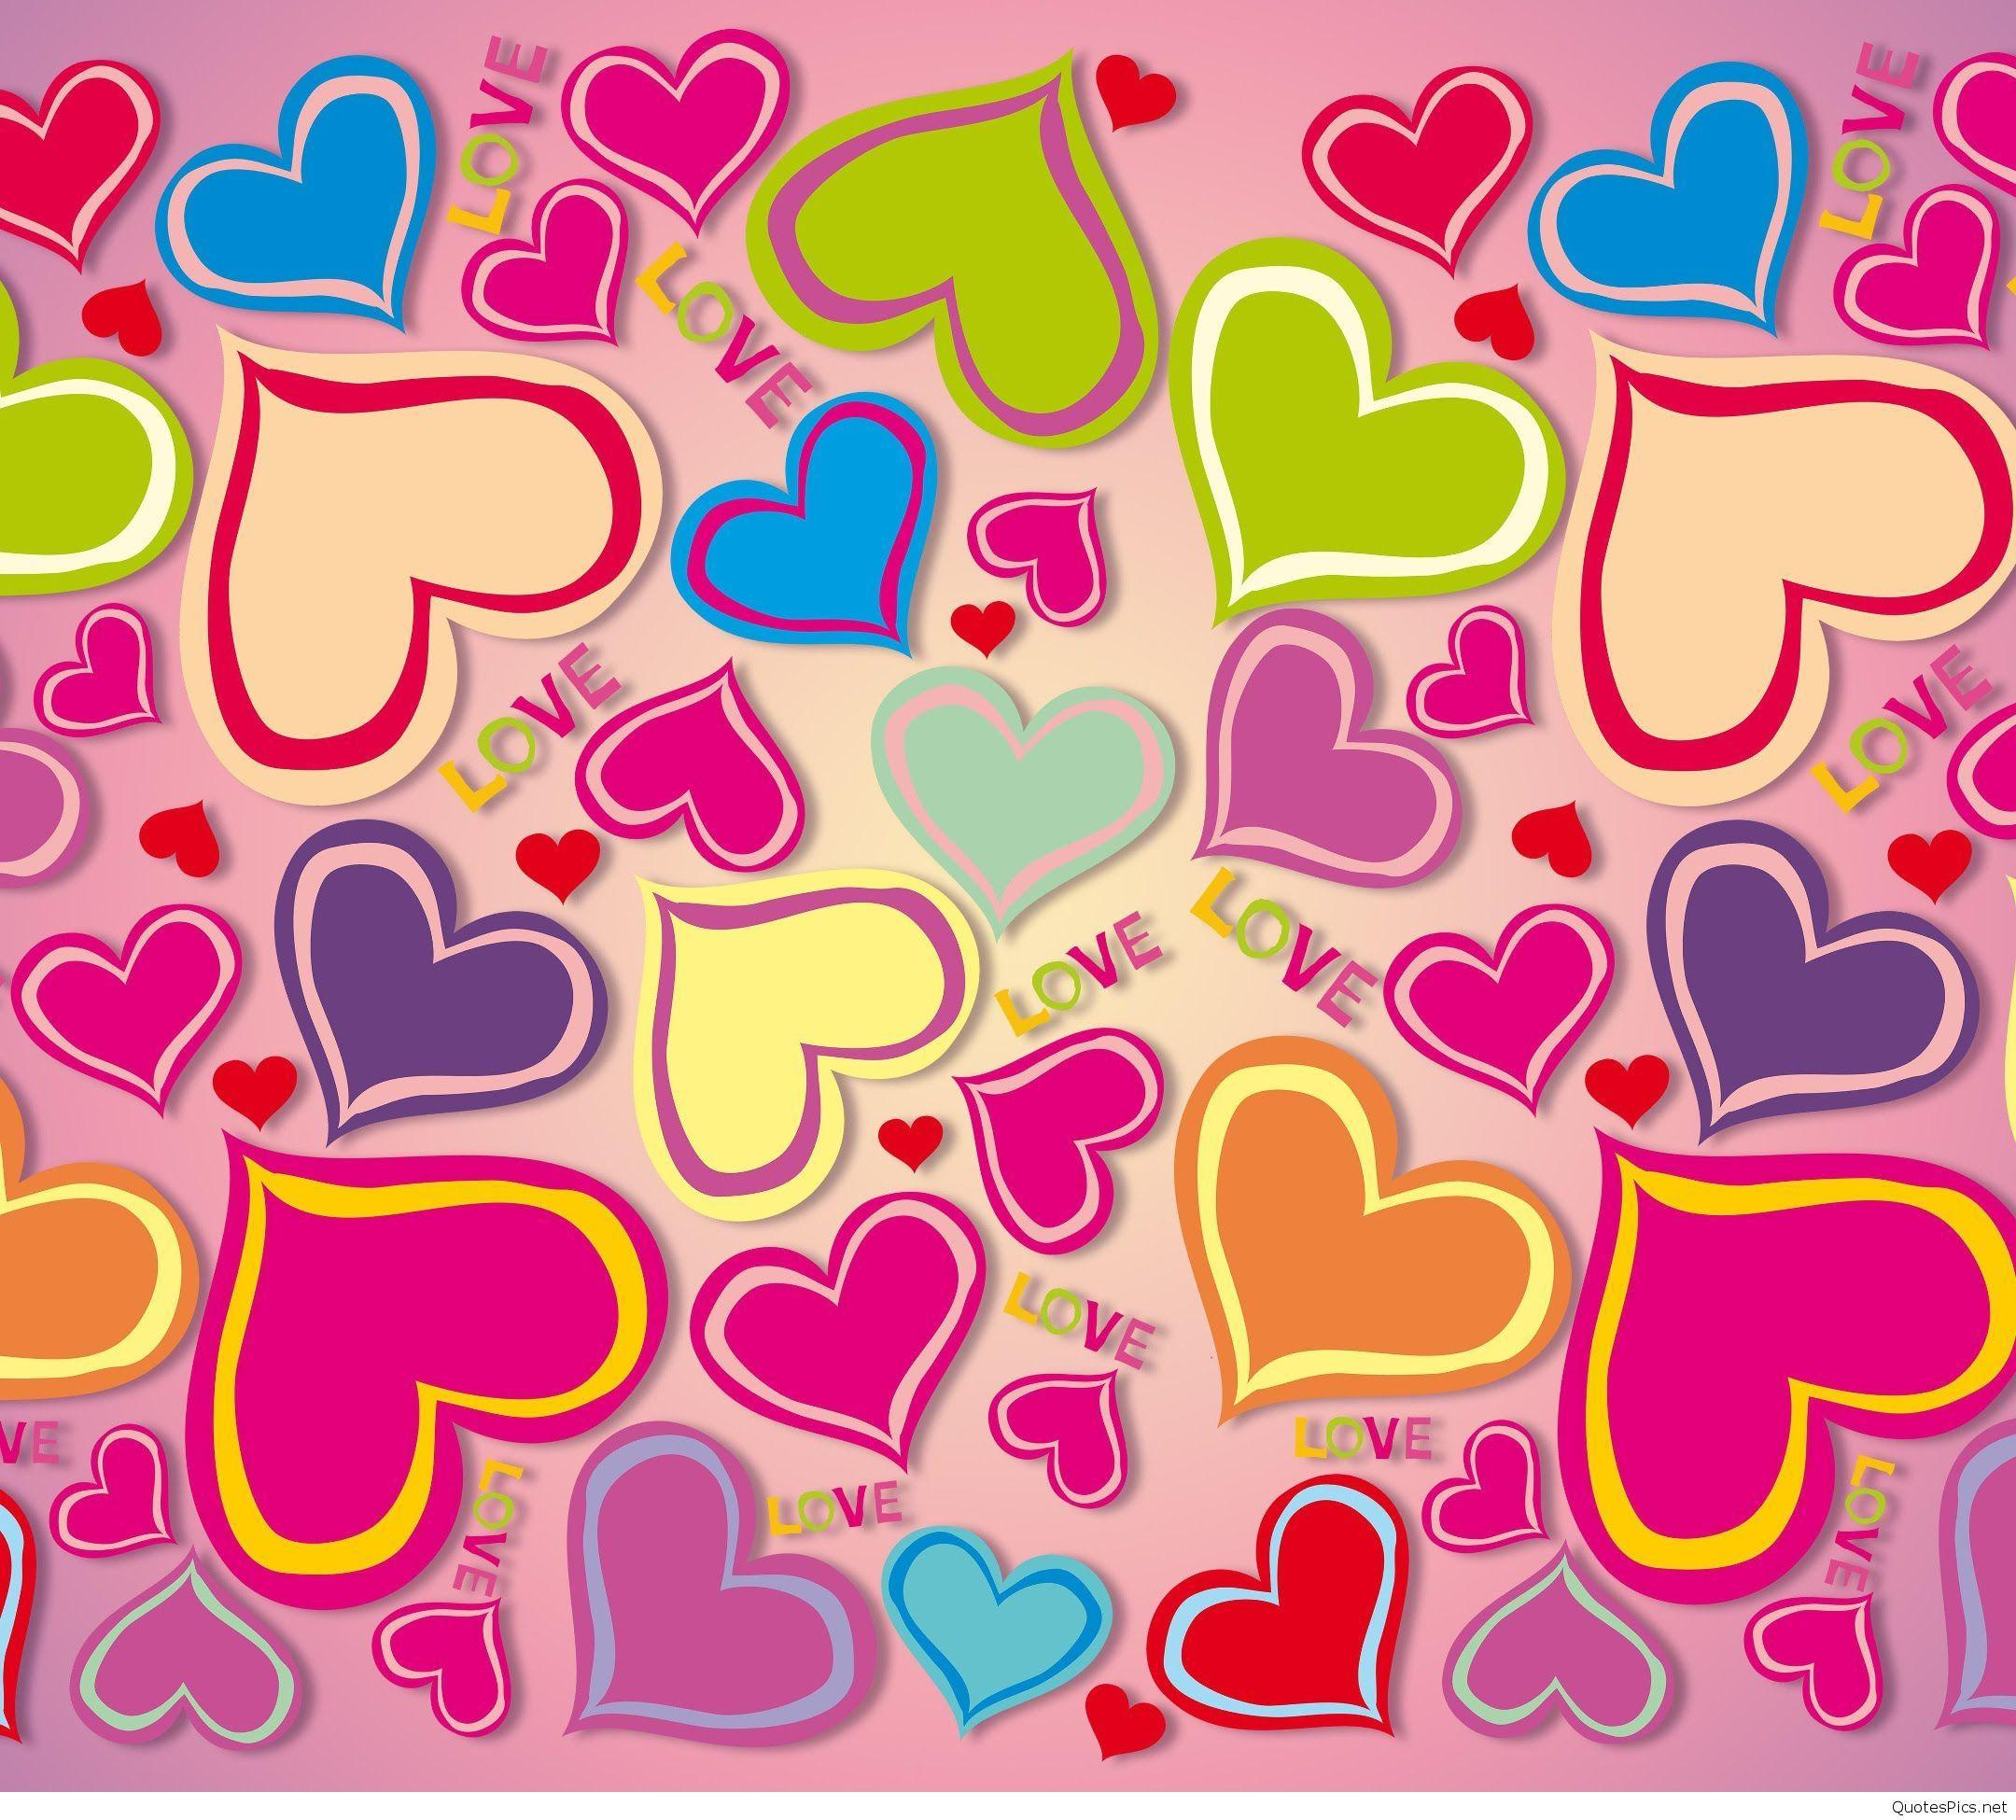 Cute Love Wallpapers For Mobile Phones Wallpaper Cave